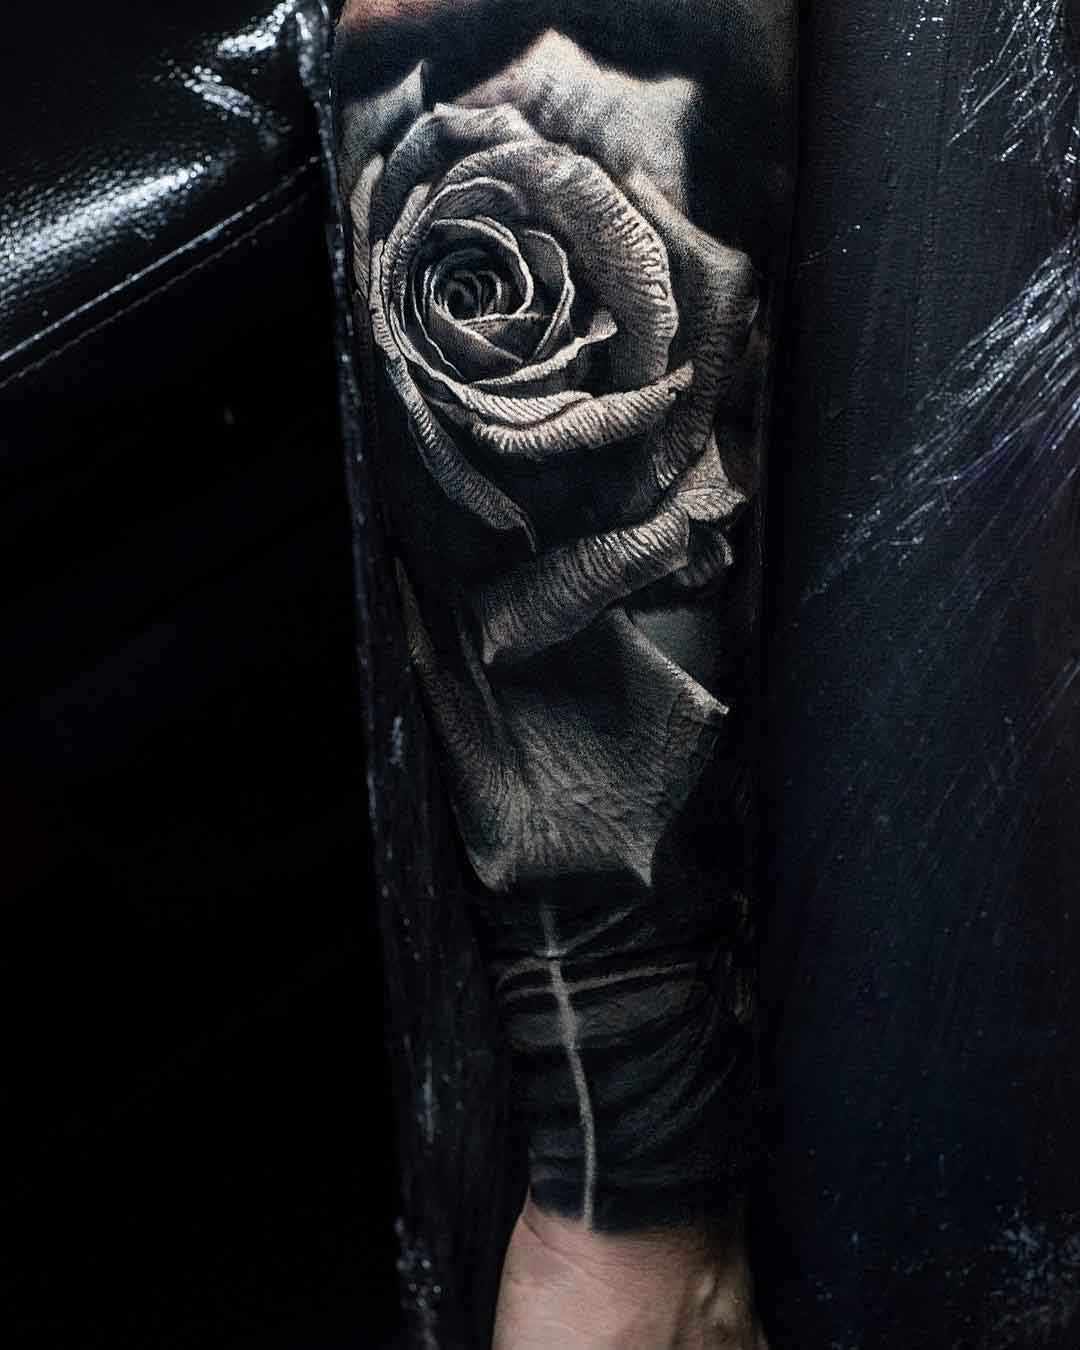 rose tattoo on arm 3D